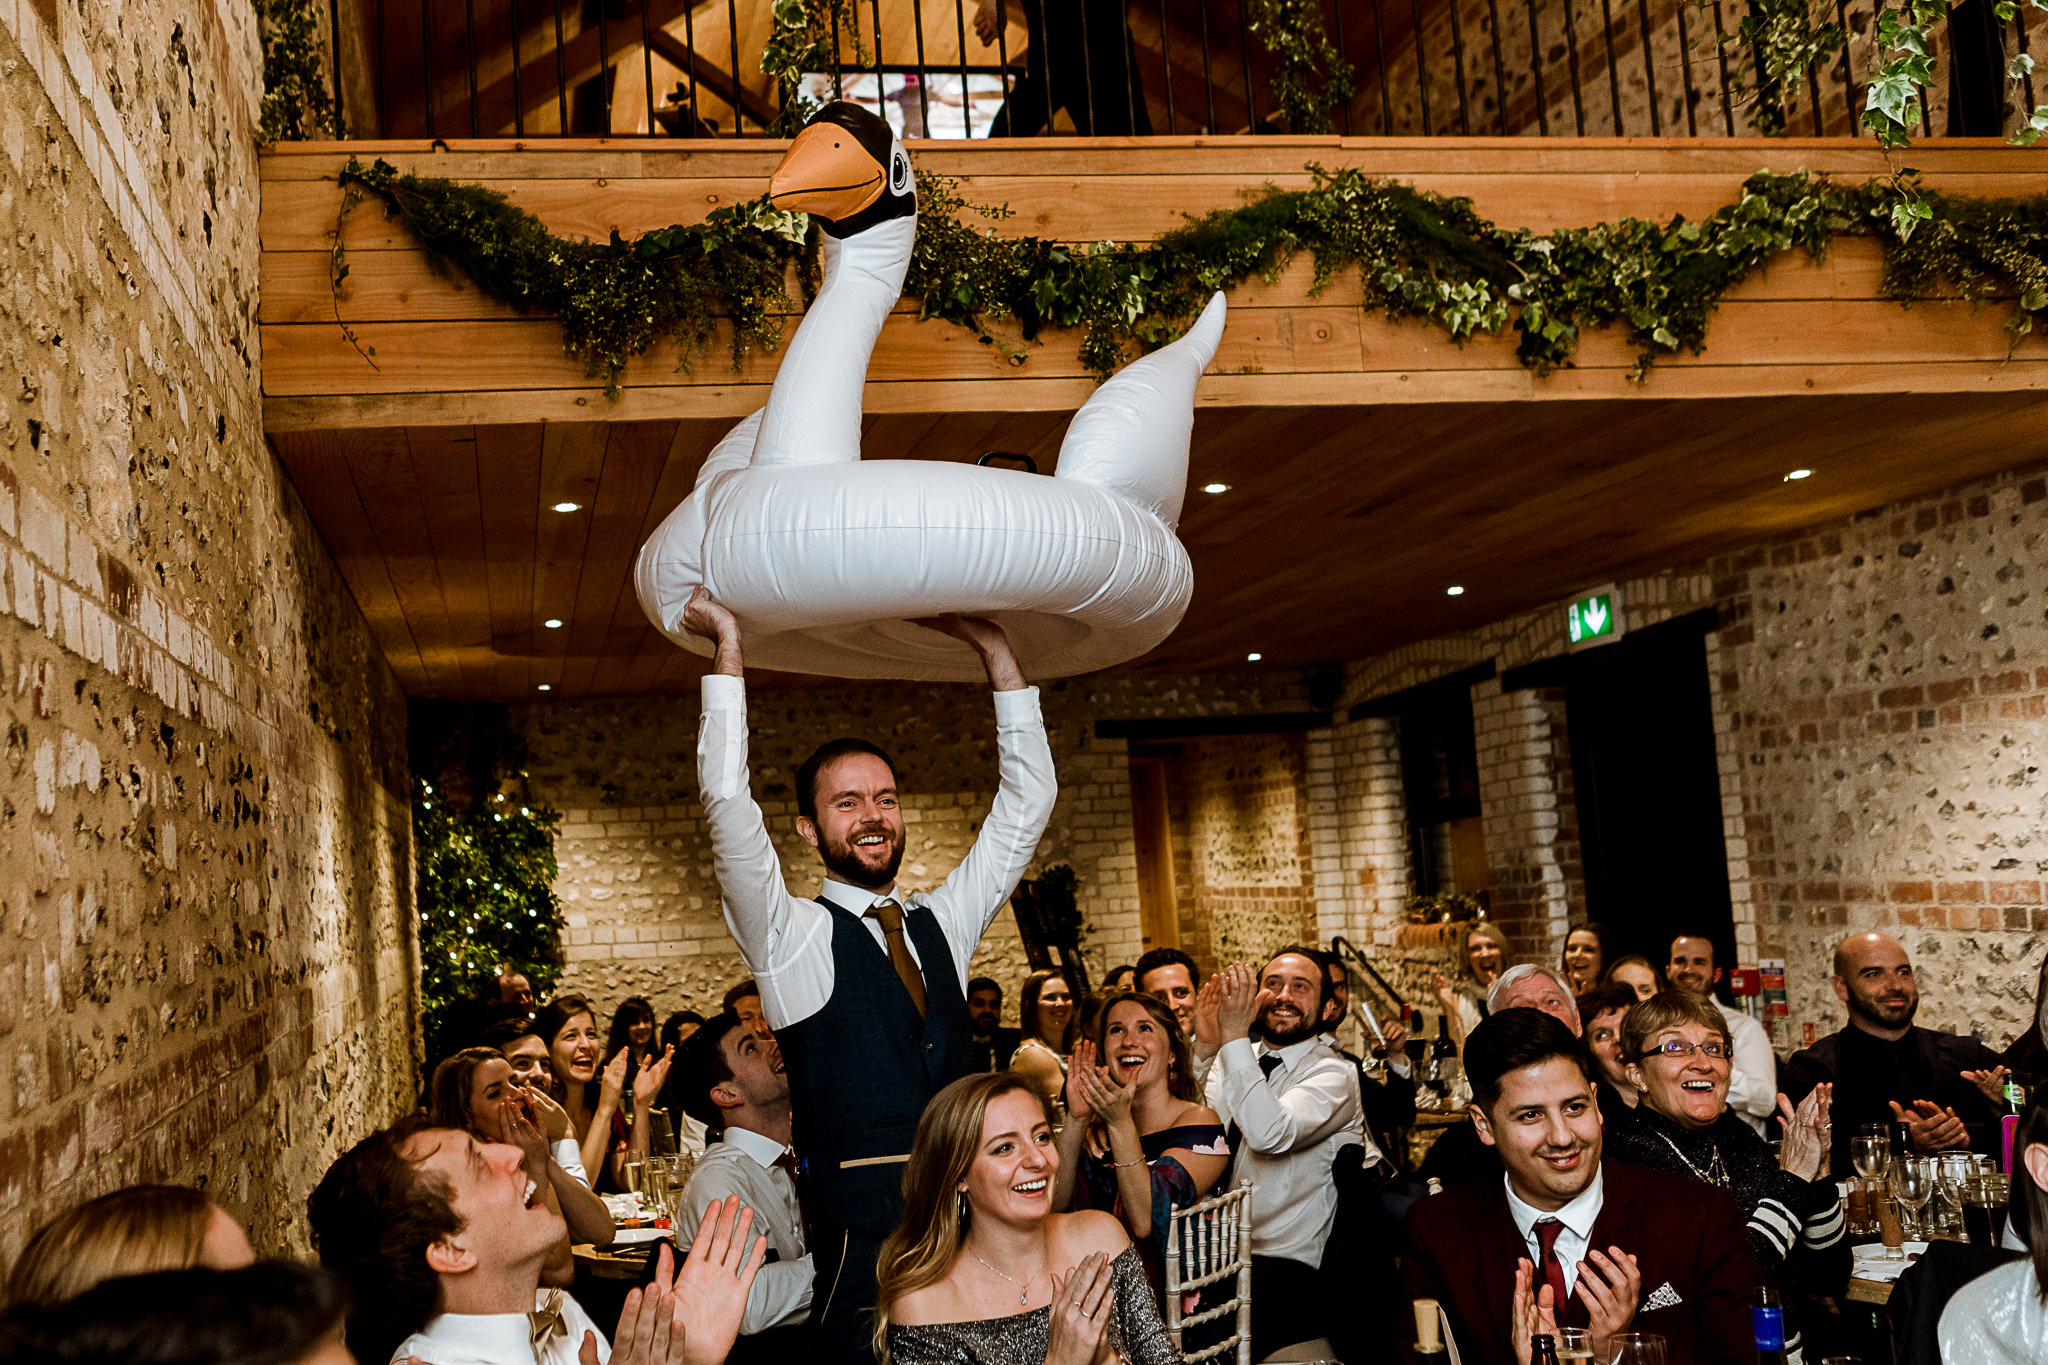 The Gathering Barn Wedding - Art by Design Photography - speeches 3